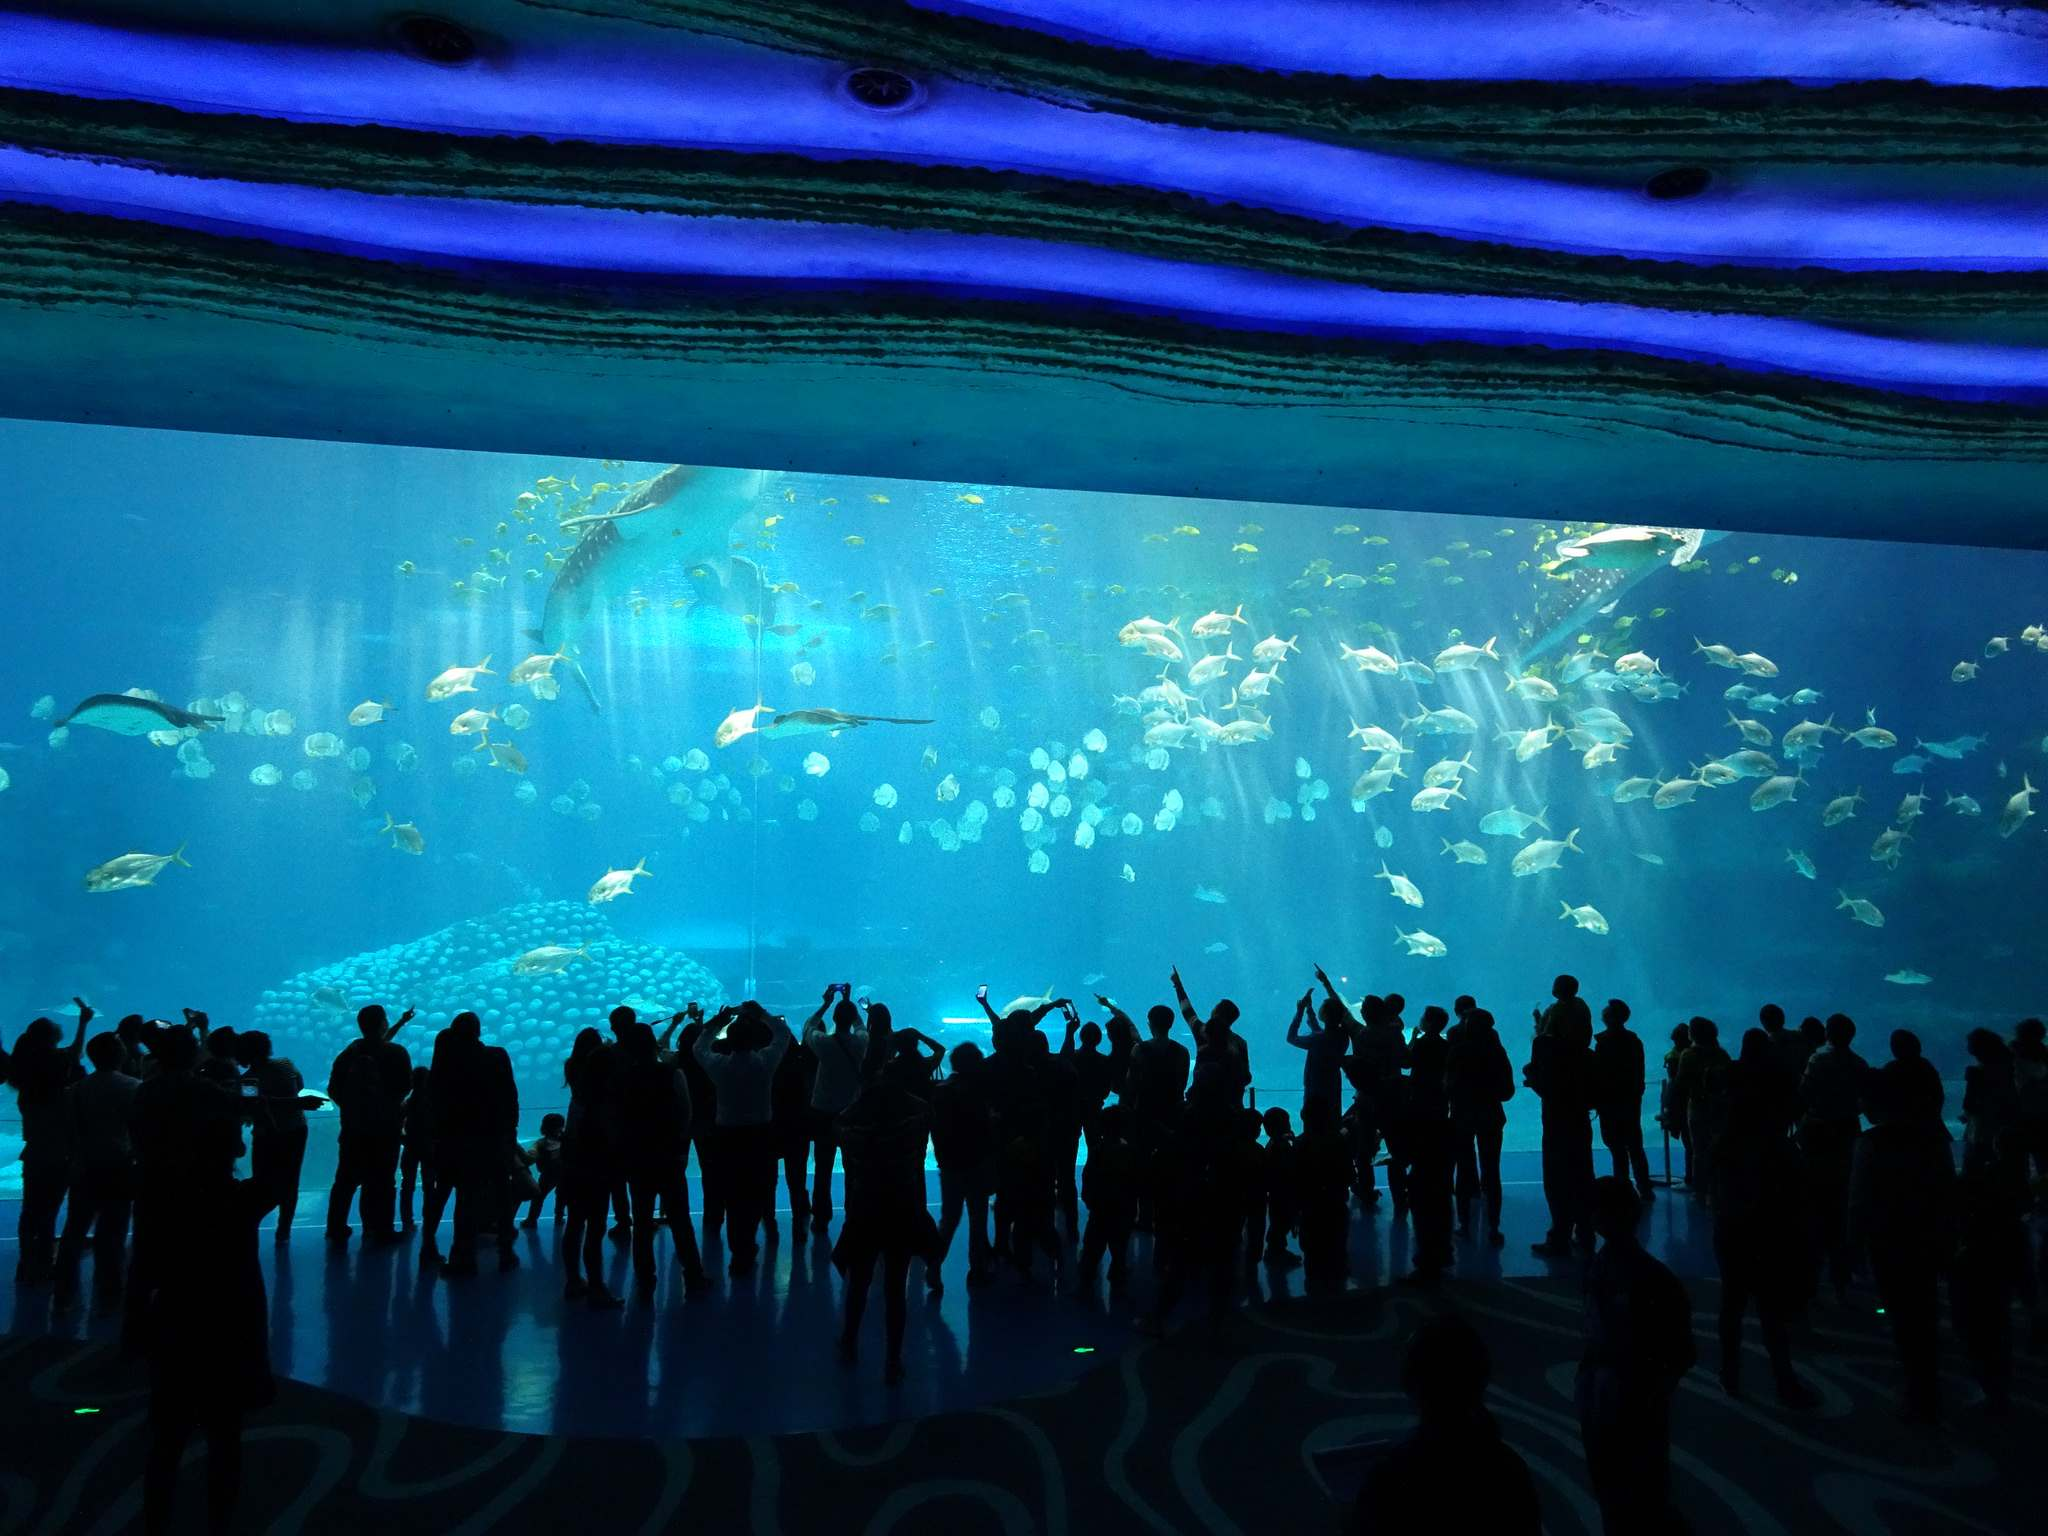 chimelong ocean kingdom14 Chimelong Ocean Kingdom   Worlds Largest Aquarium